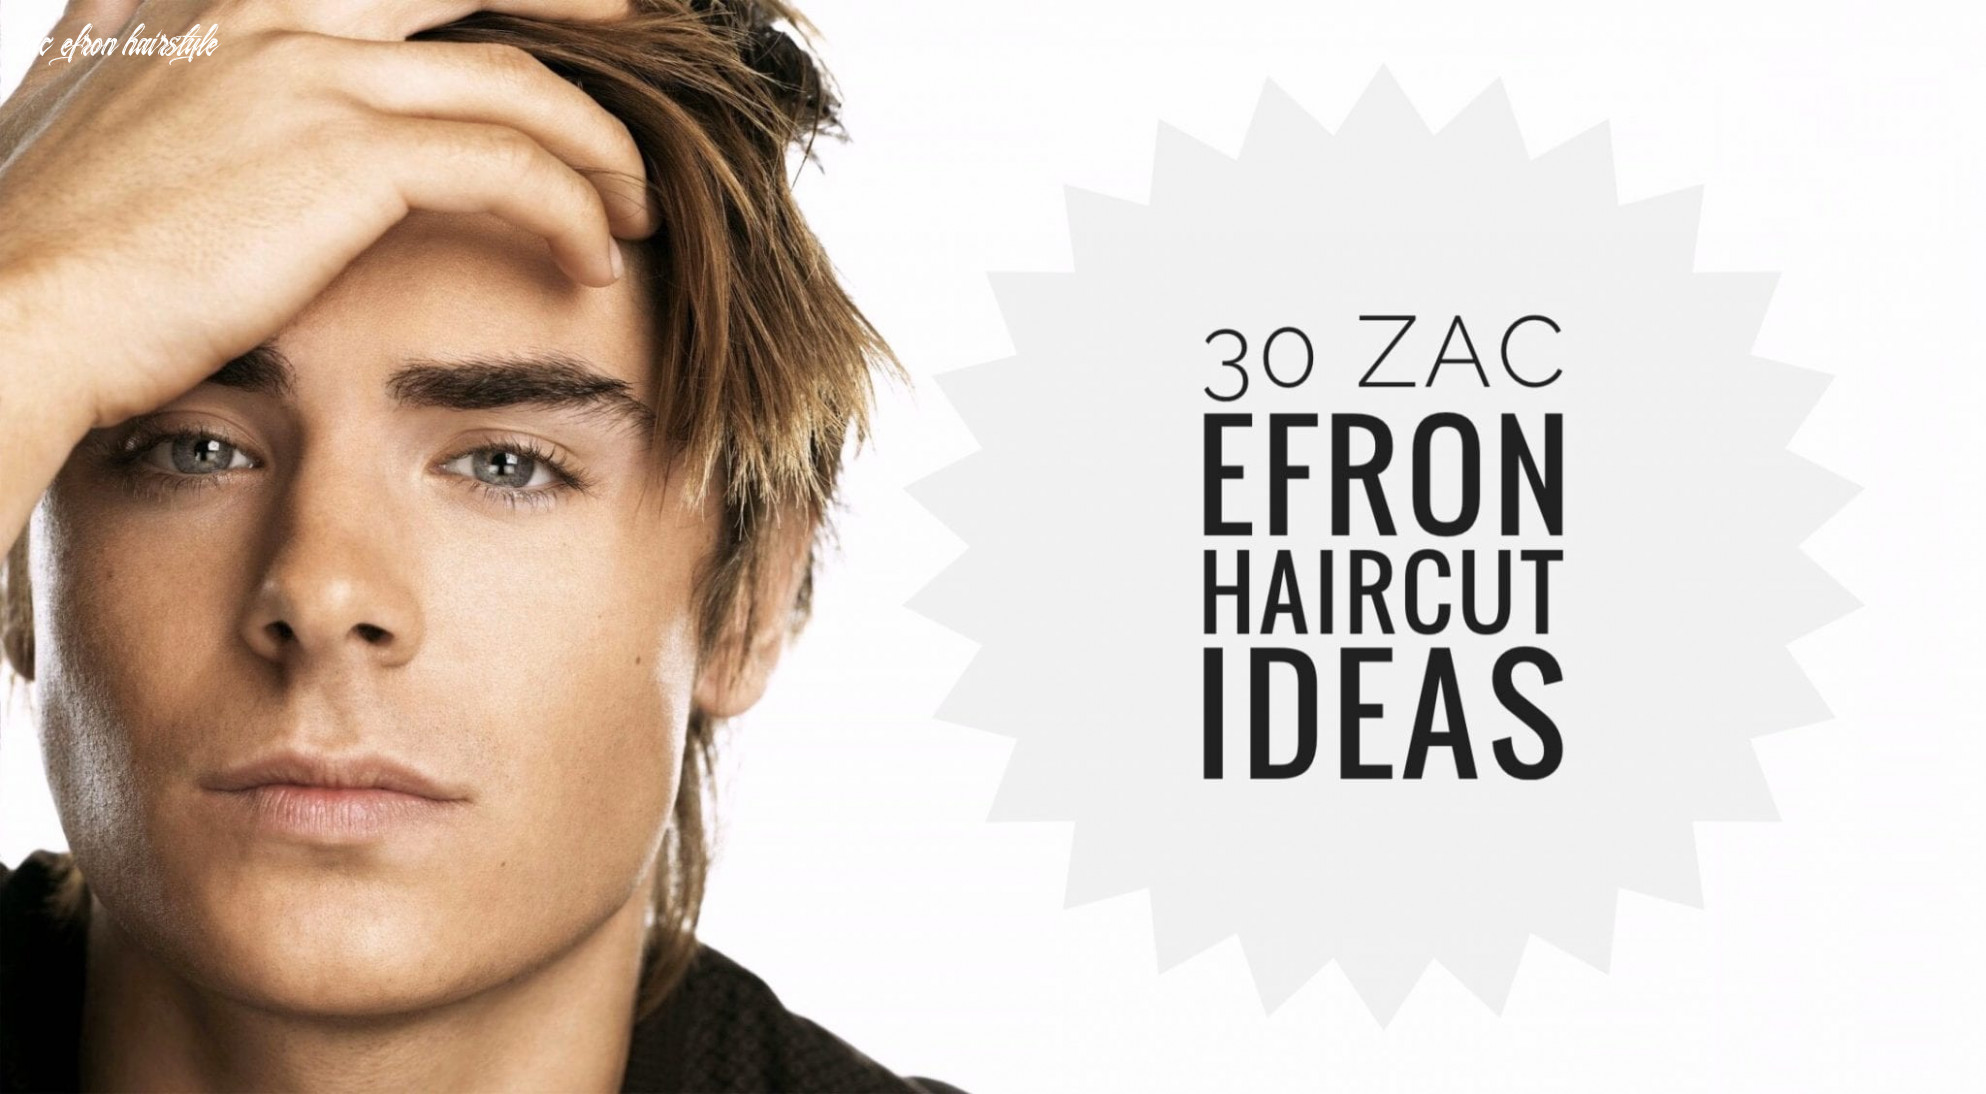 11 Zac Efron Haircut Ideas for All Occasions - Men Hairstyles World